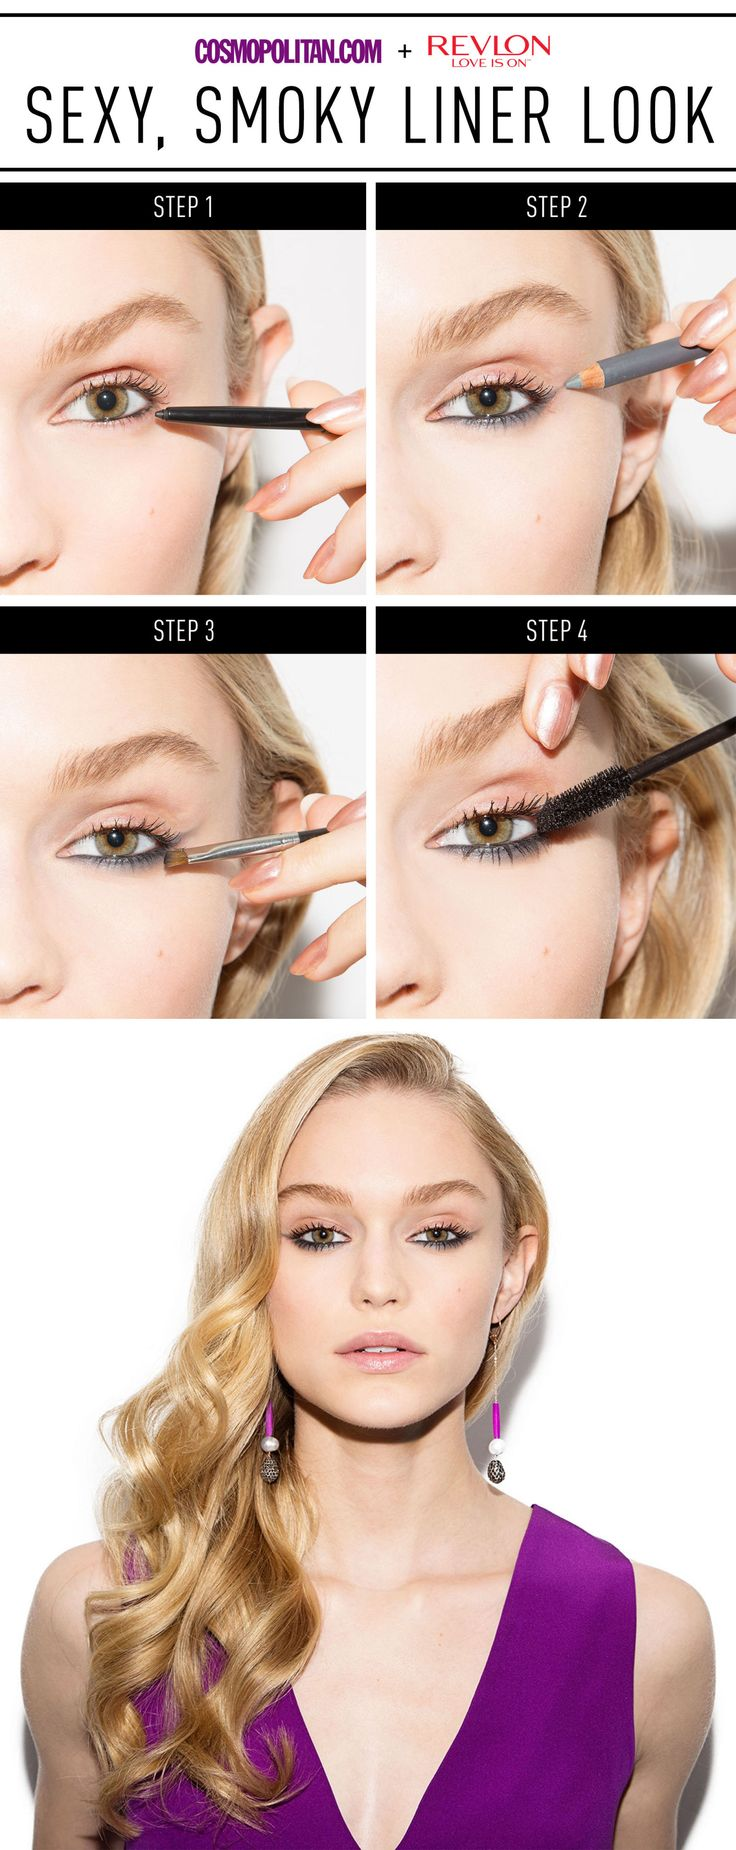 Play up your lower lash line for date night!